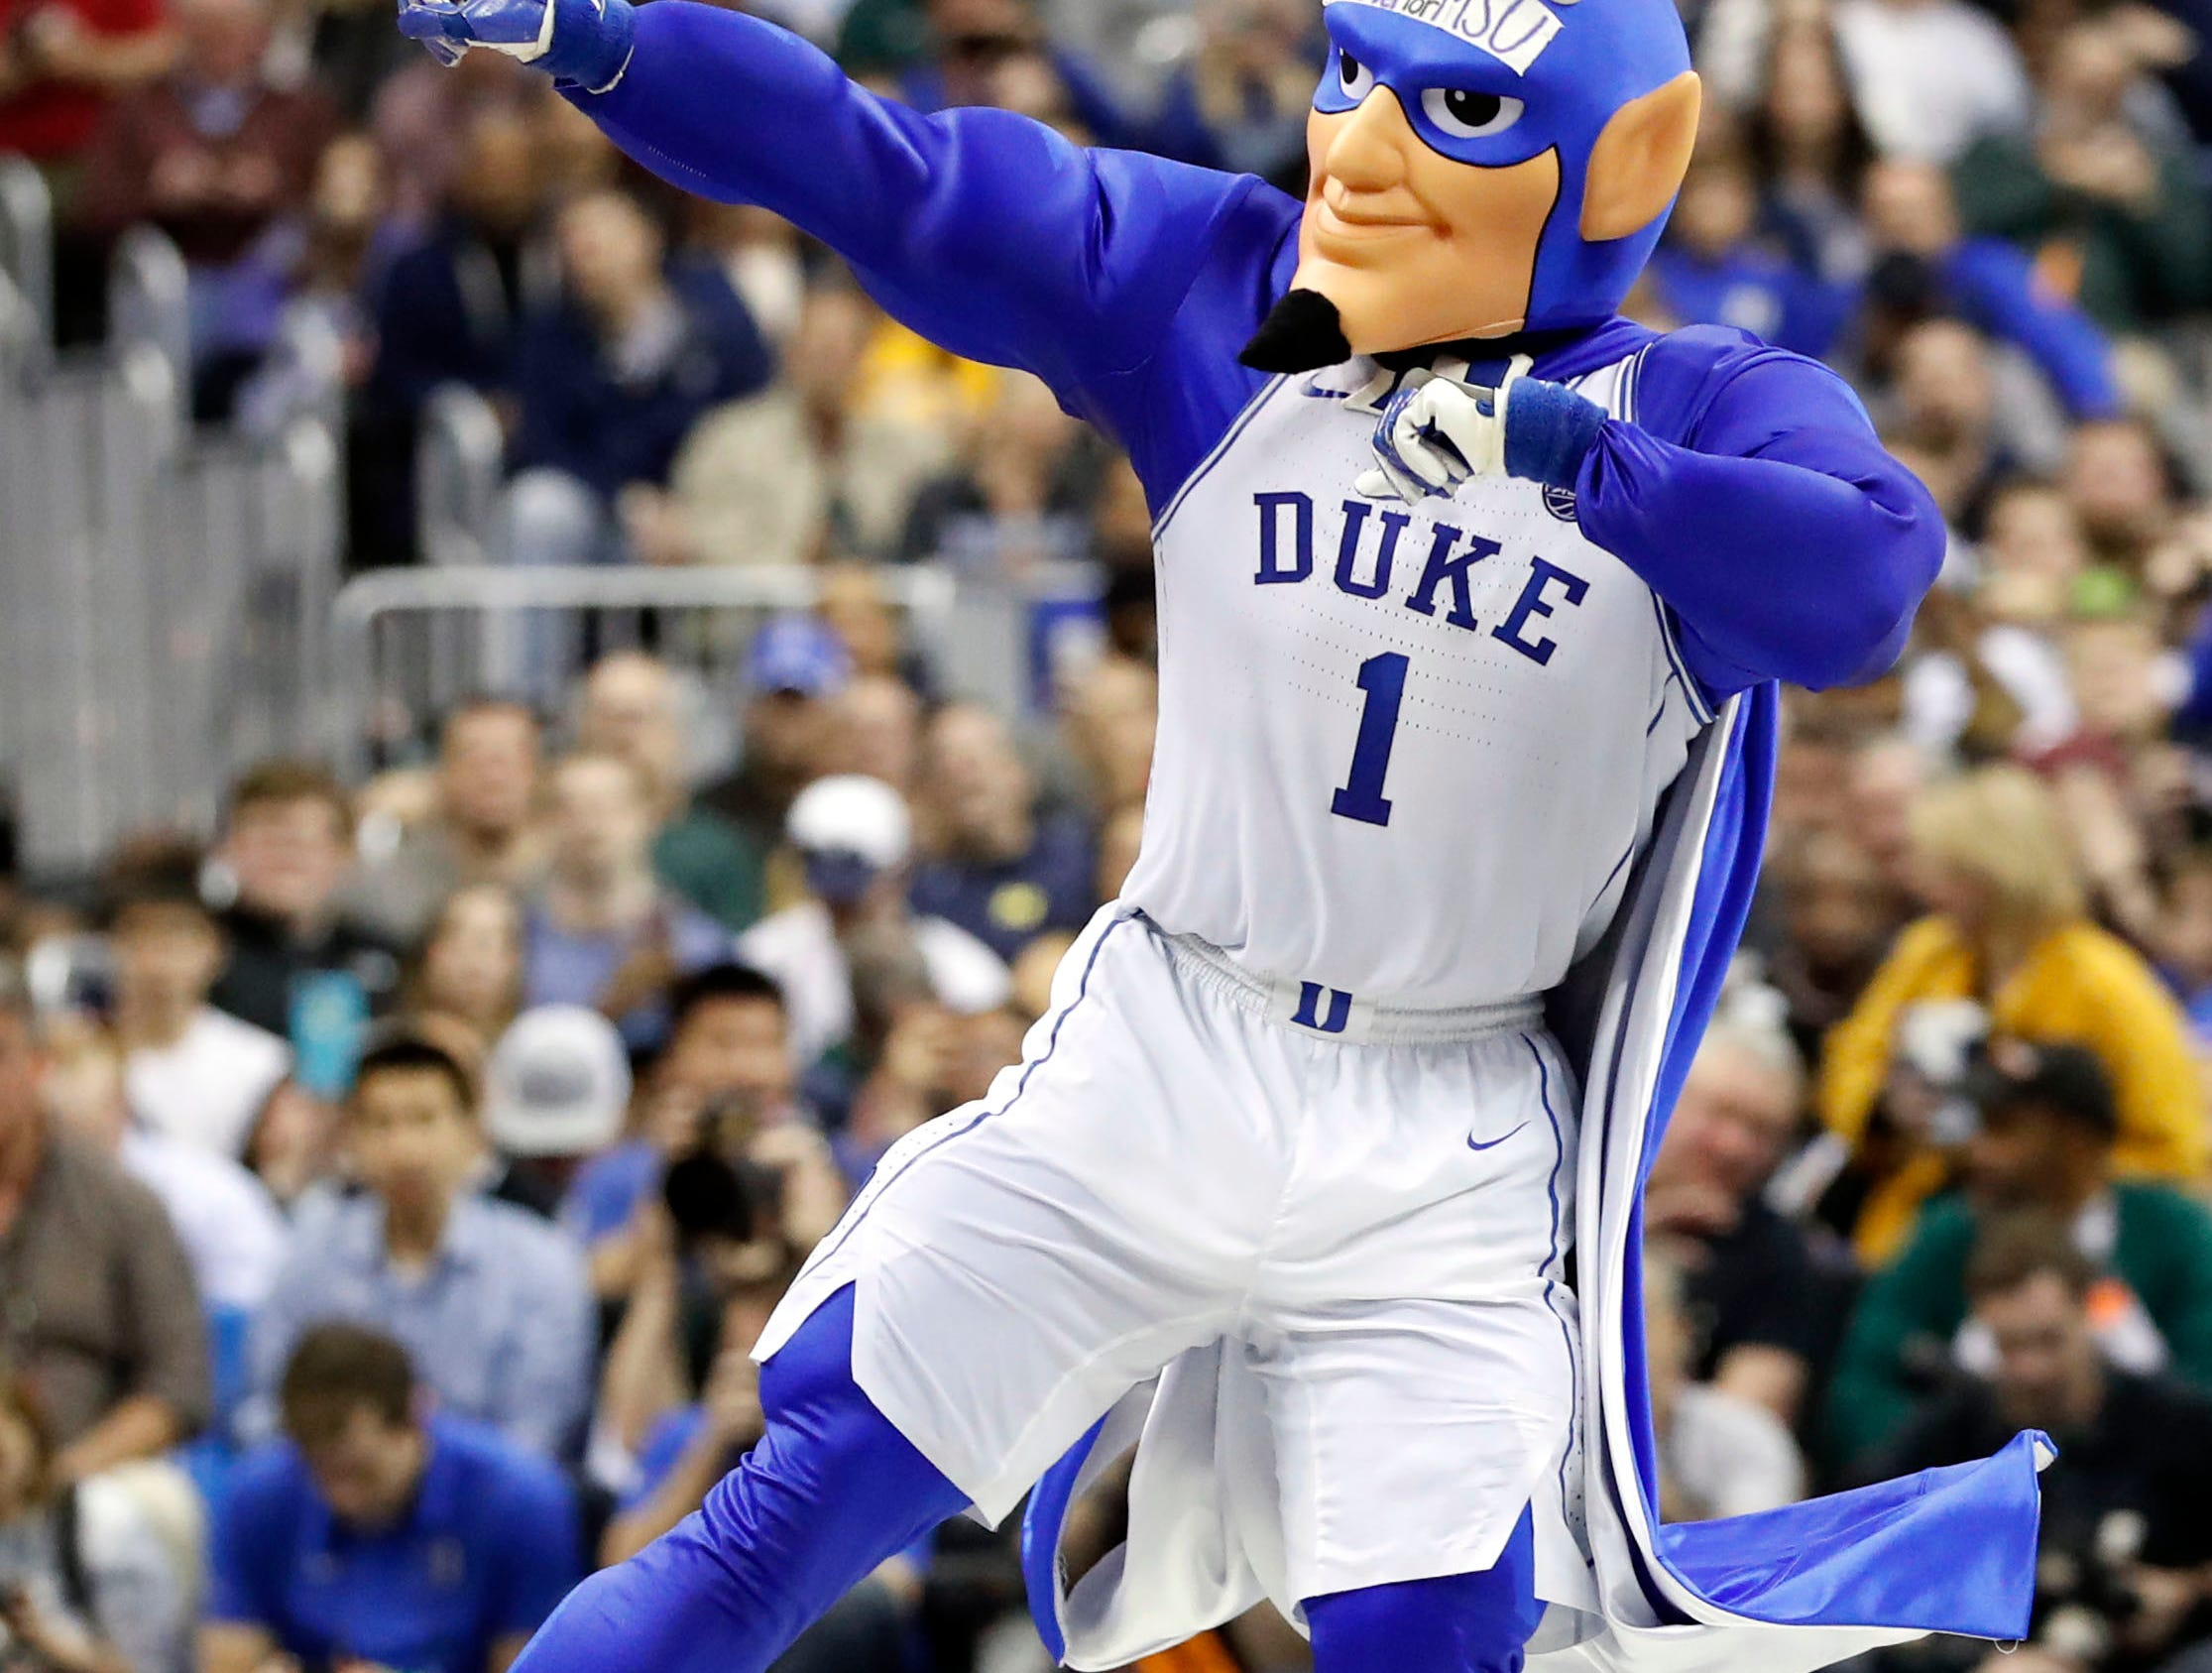 Mar 31, 2019; Washington, DC, USA; The Duke Blue Devils mascot performs during the second half against the Michigan State Spartans in the championship game of the east regional of the 2019 NCAA Tournament at Capital One Arena. Mandatory Credit: Geoff Burke-USA TODAY Sports